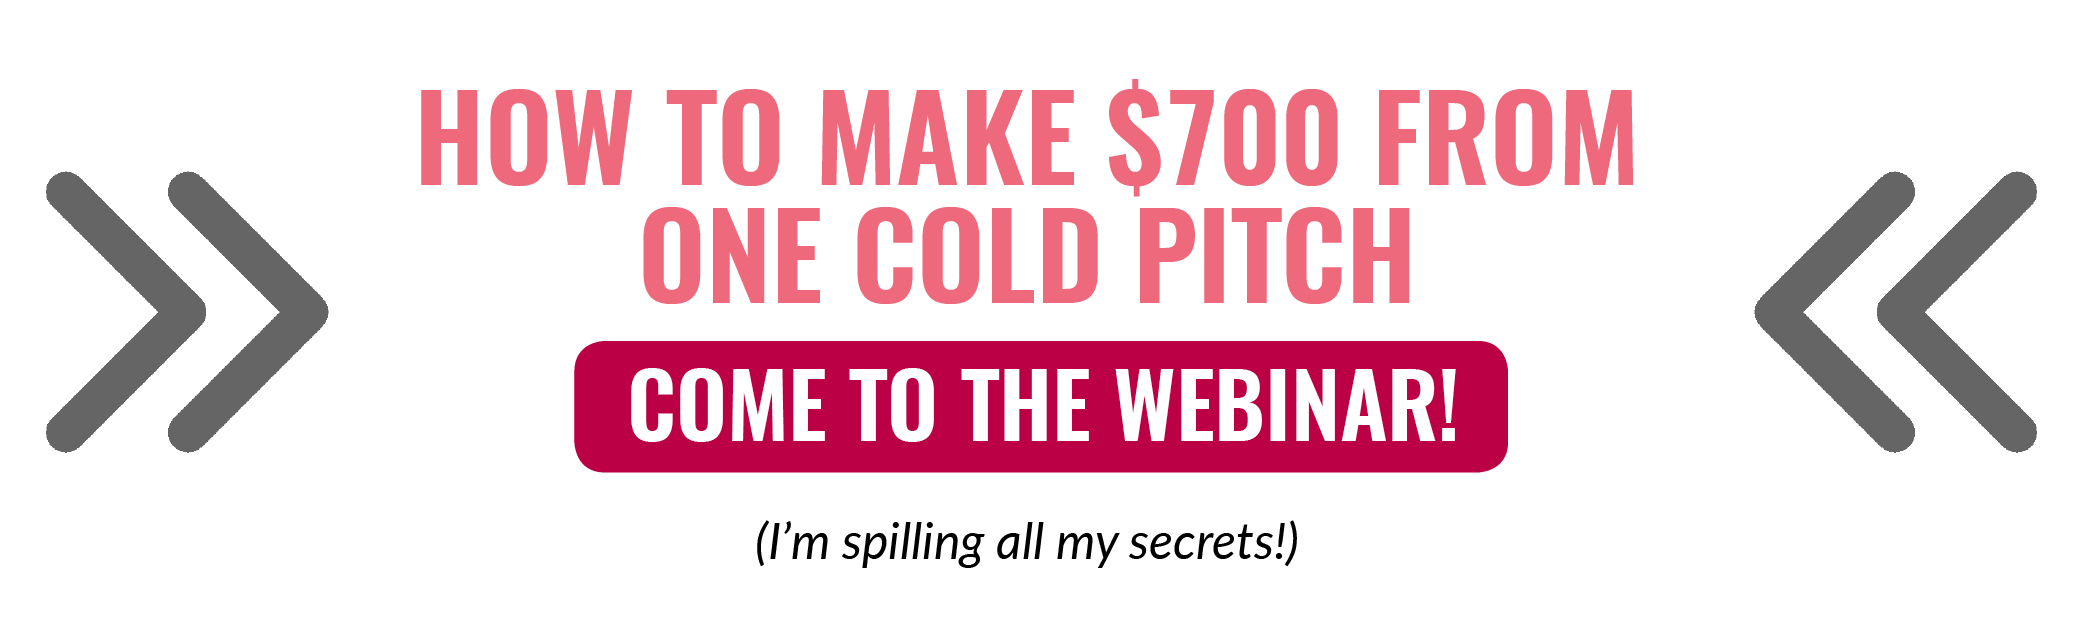 cold-pitch-webinar-clients-in-facebook-groups